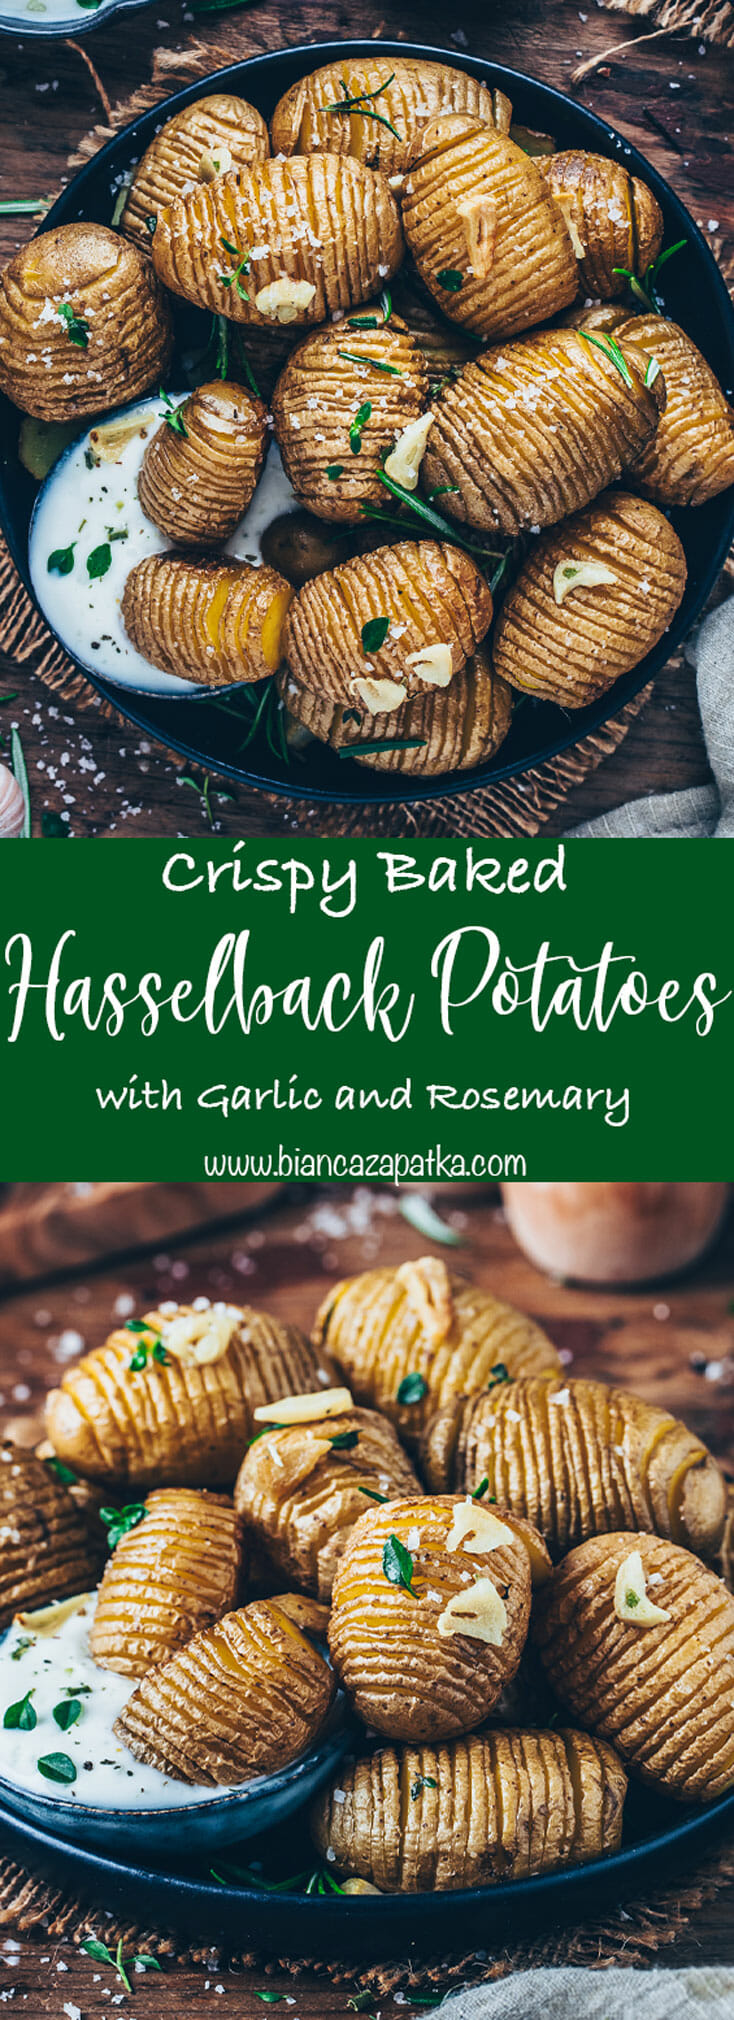 Crispy baked Hasselback Potatoes with garlic and rosemary